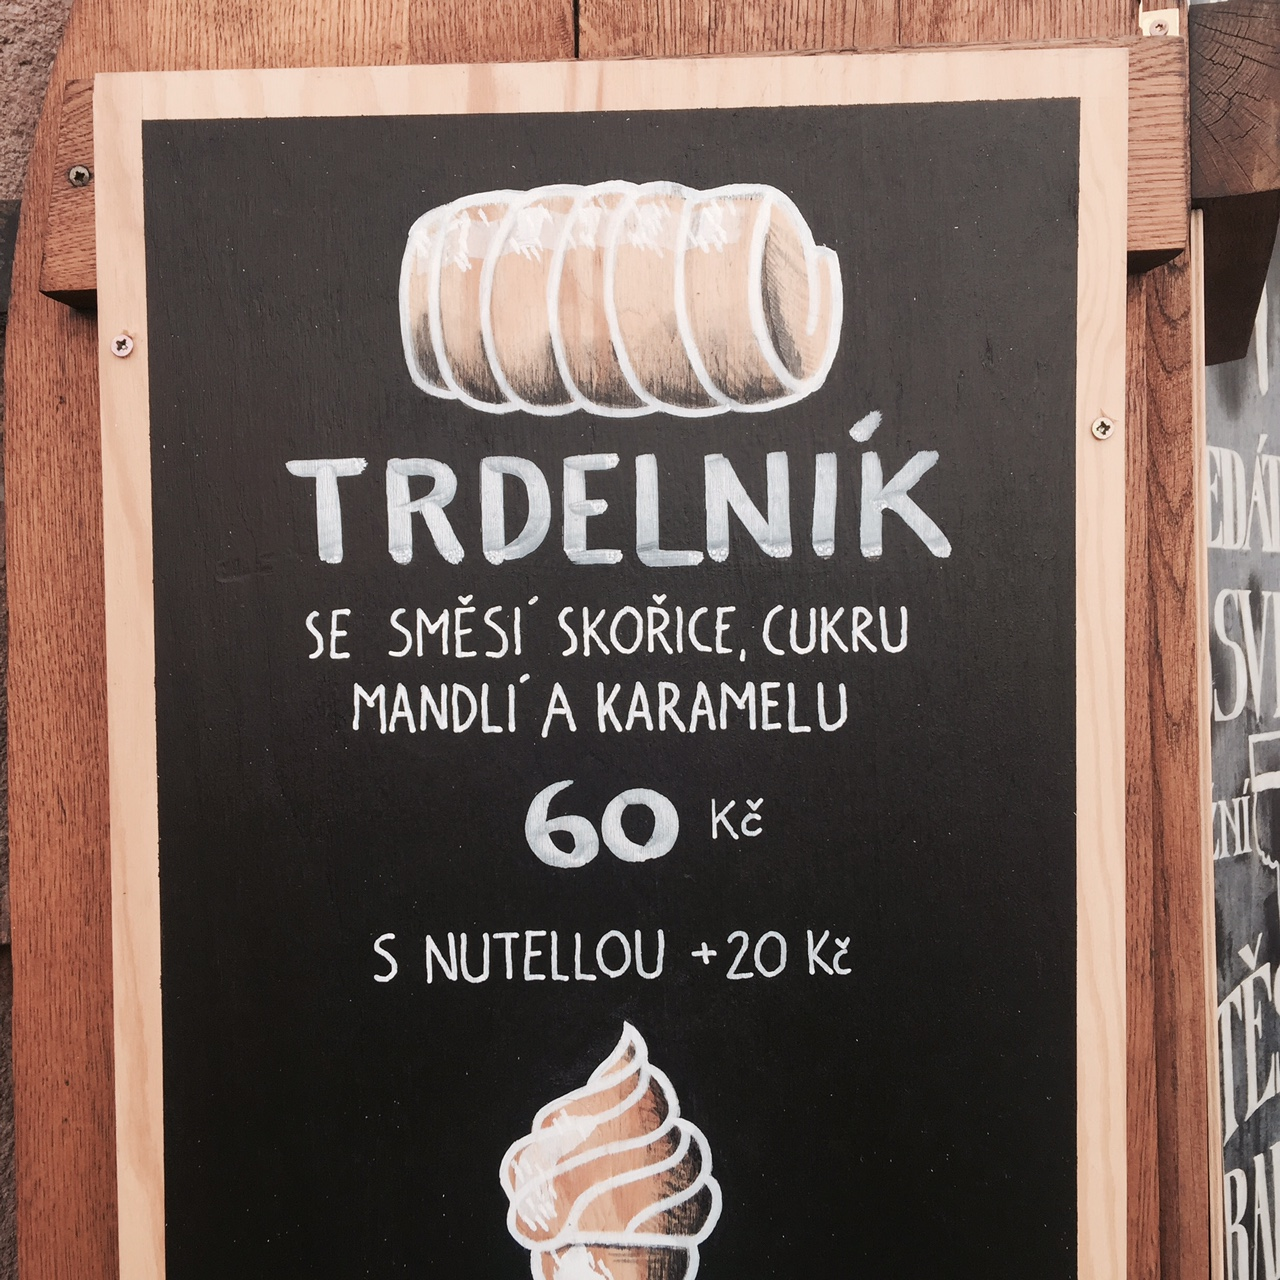 Tredelnik PRague